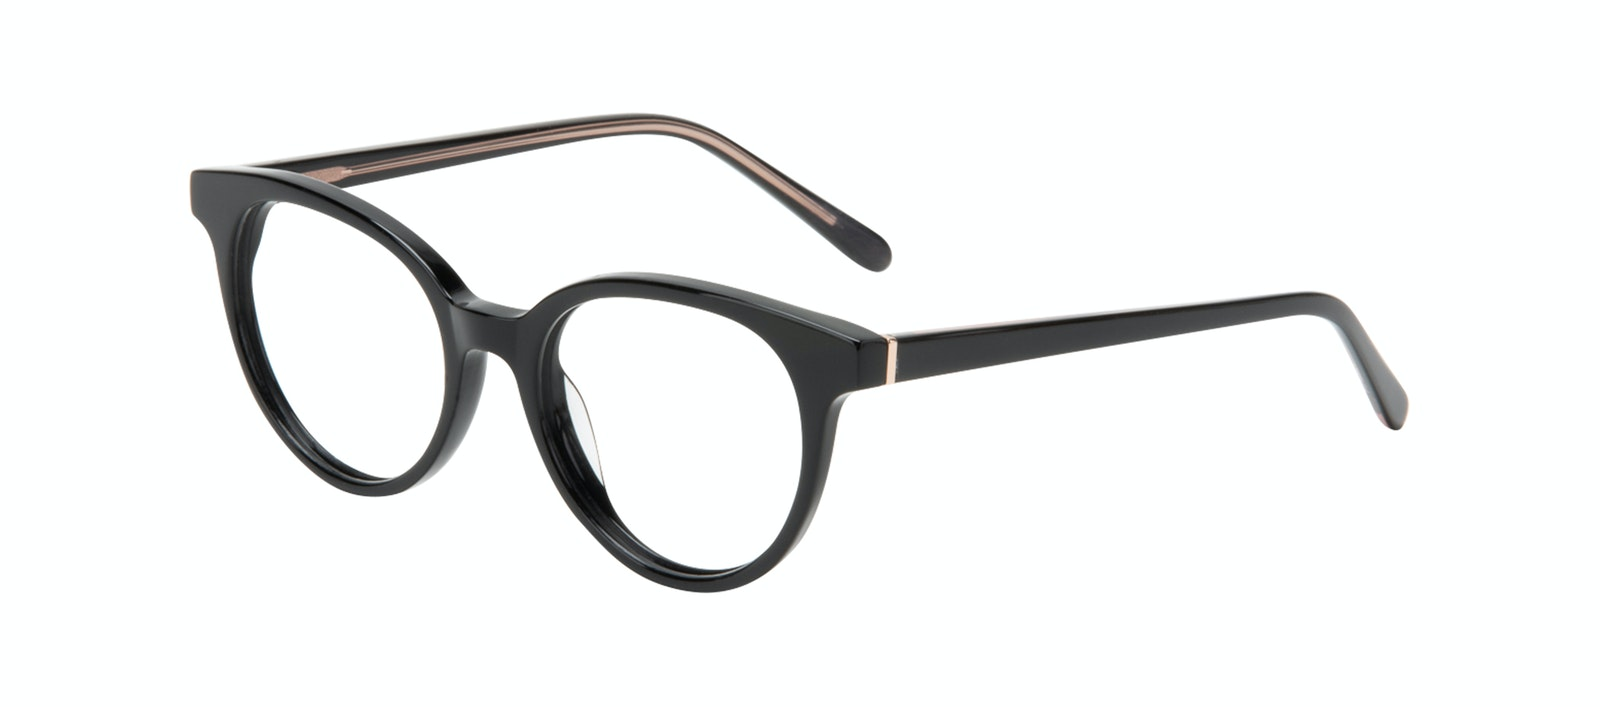 Affordable Fashion Glasses Round Eyeglasses Women Bright Black Tilt